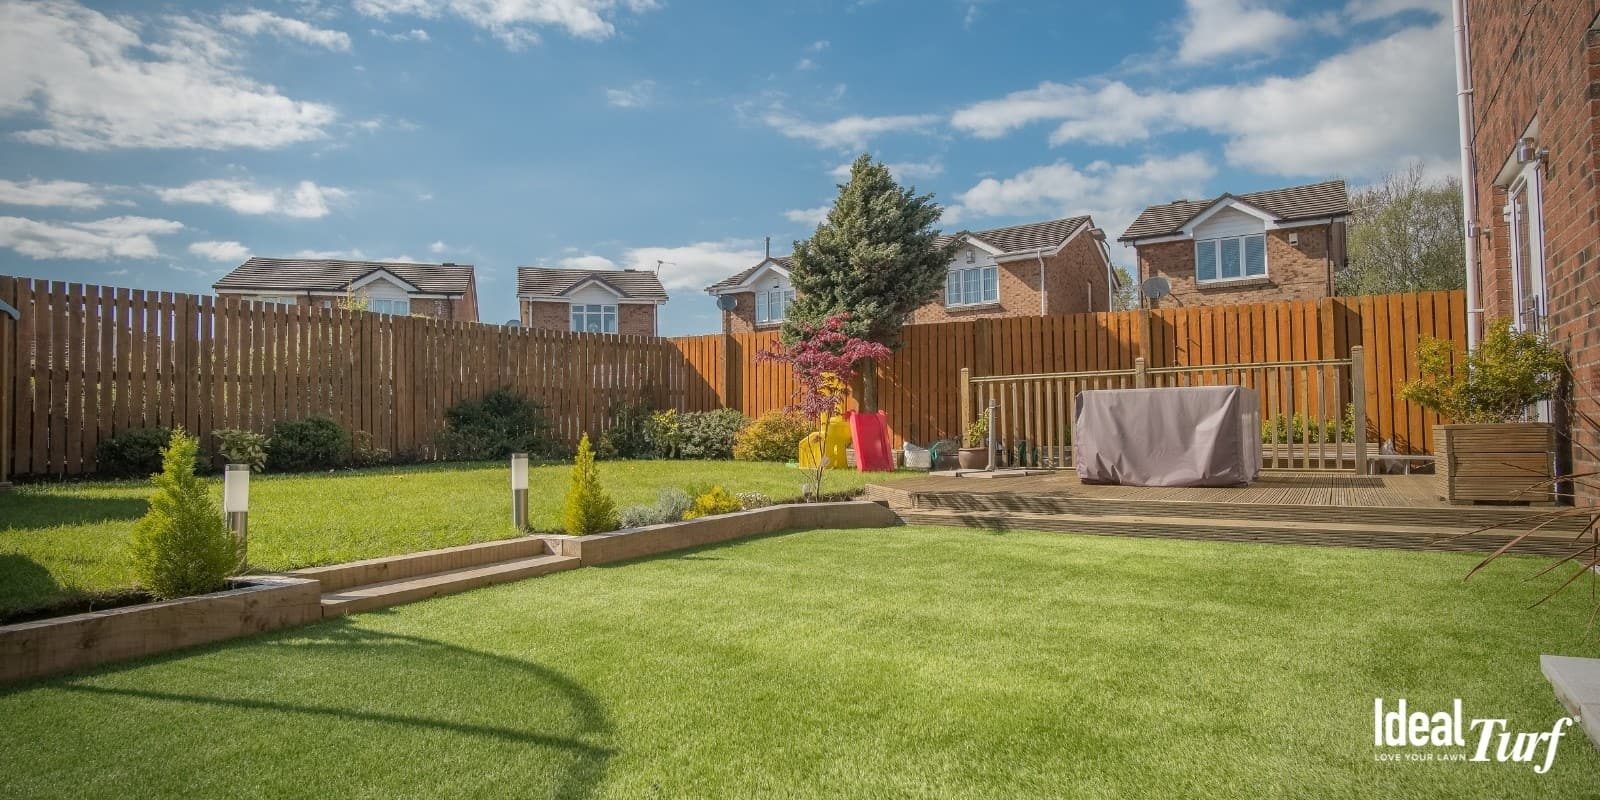 Fenced-in backyard with artificial grass